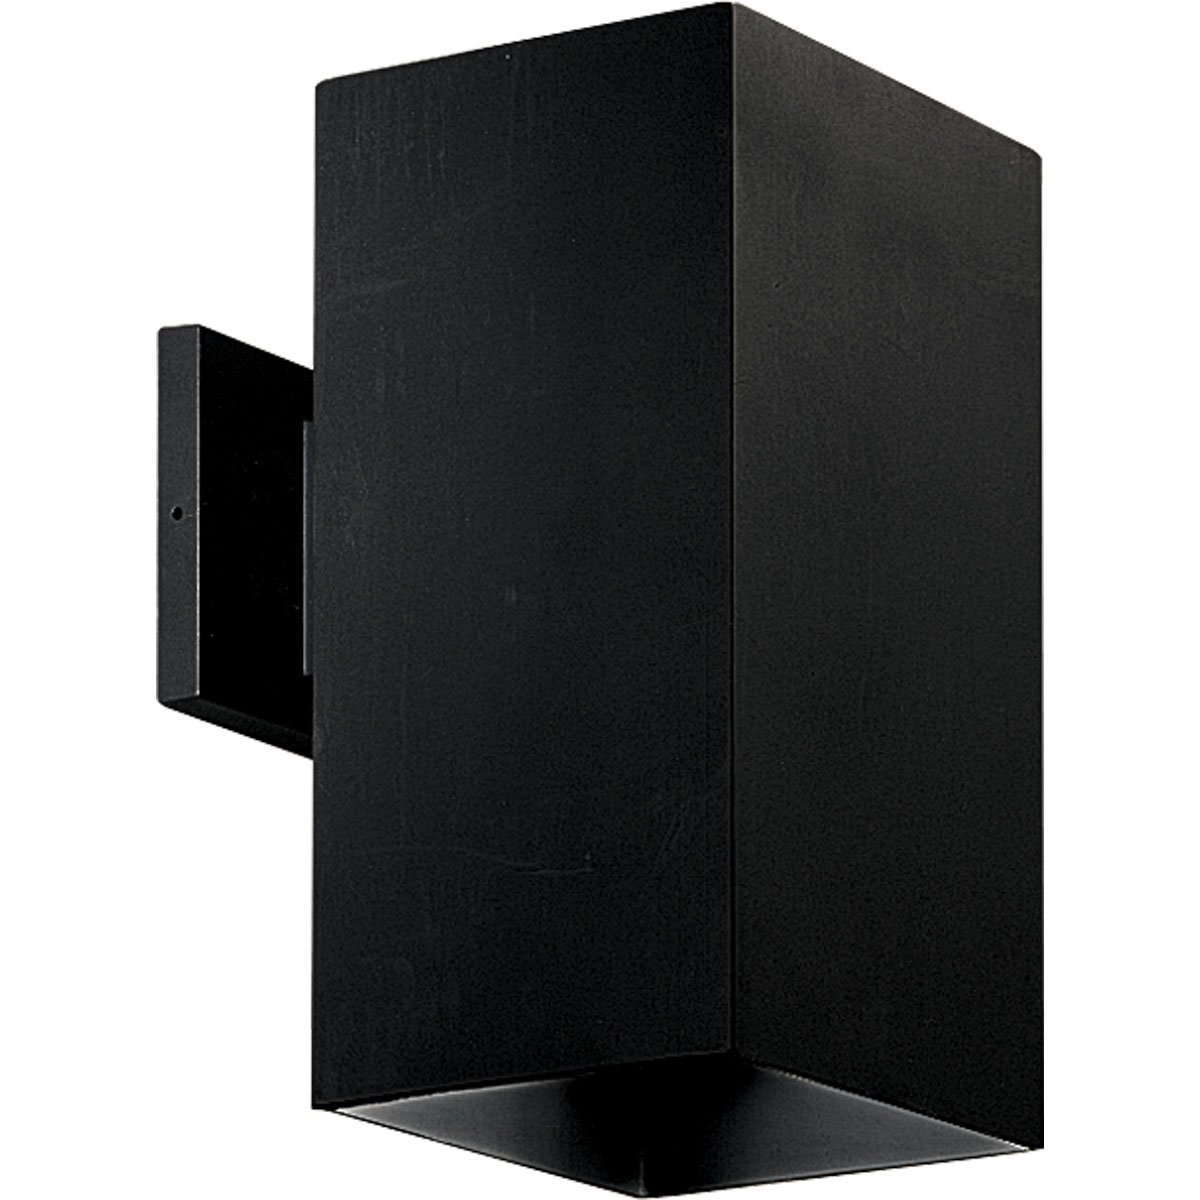 Progress Lighting P5643-31 6-Inch Square with Heavy Duty Aluminum Construction and Die Cast Wall Bracket Powder Coated Finish, Black by Progress Lighting